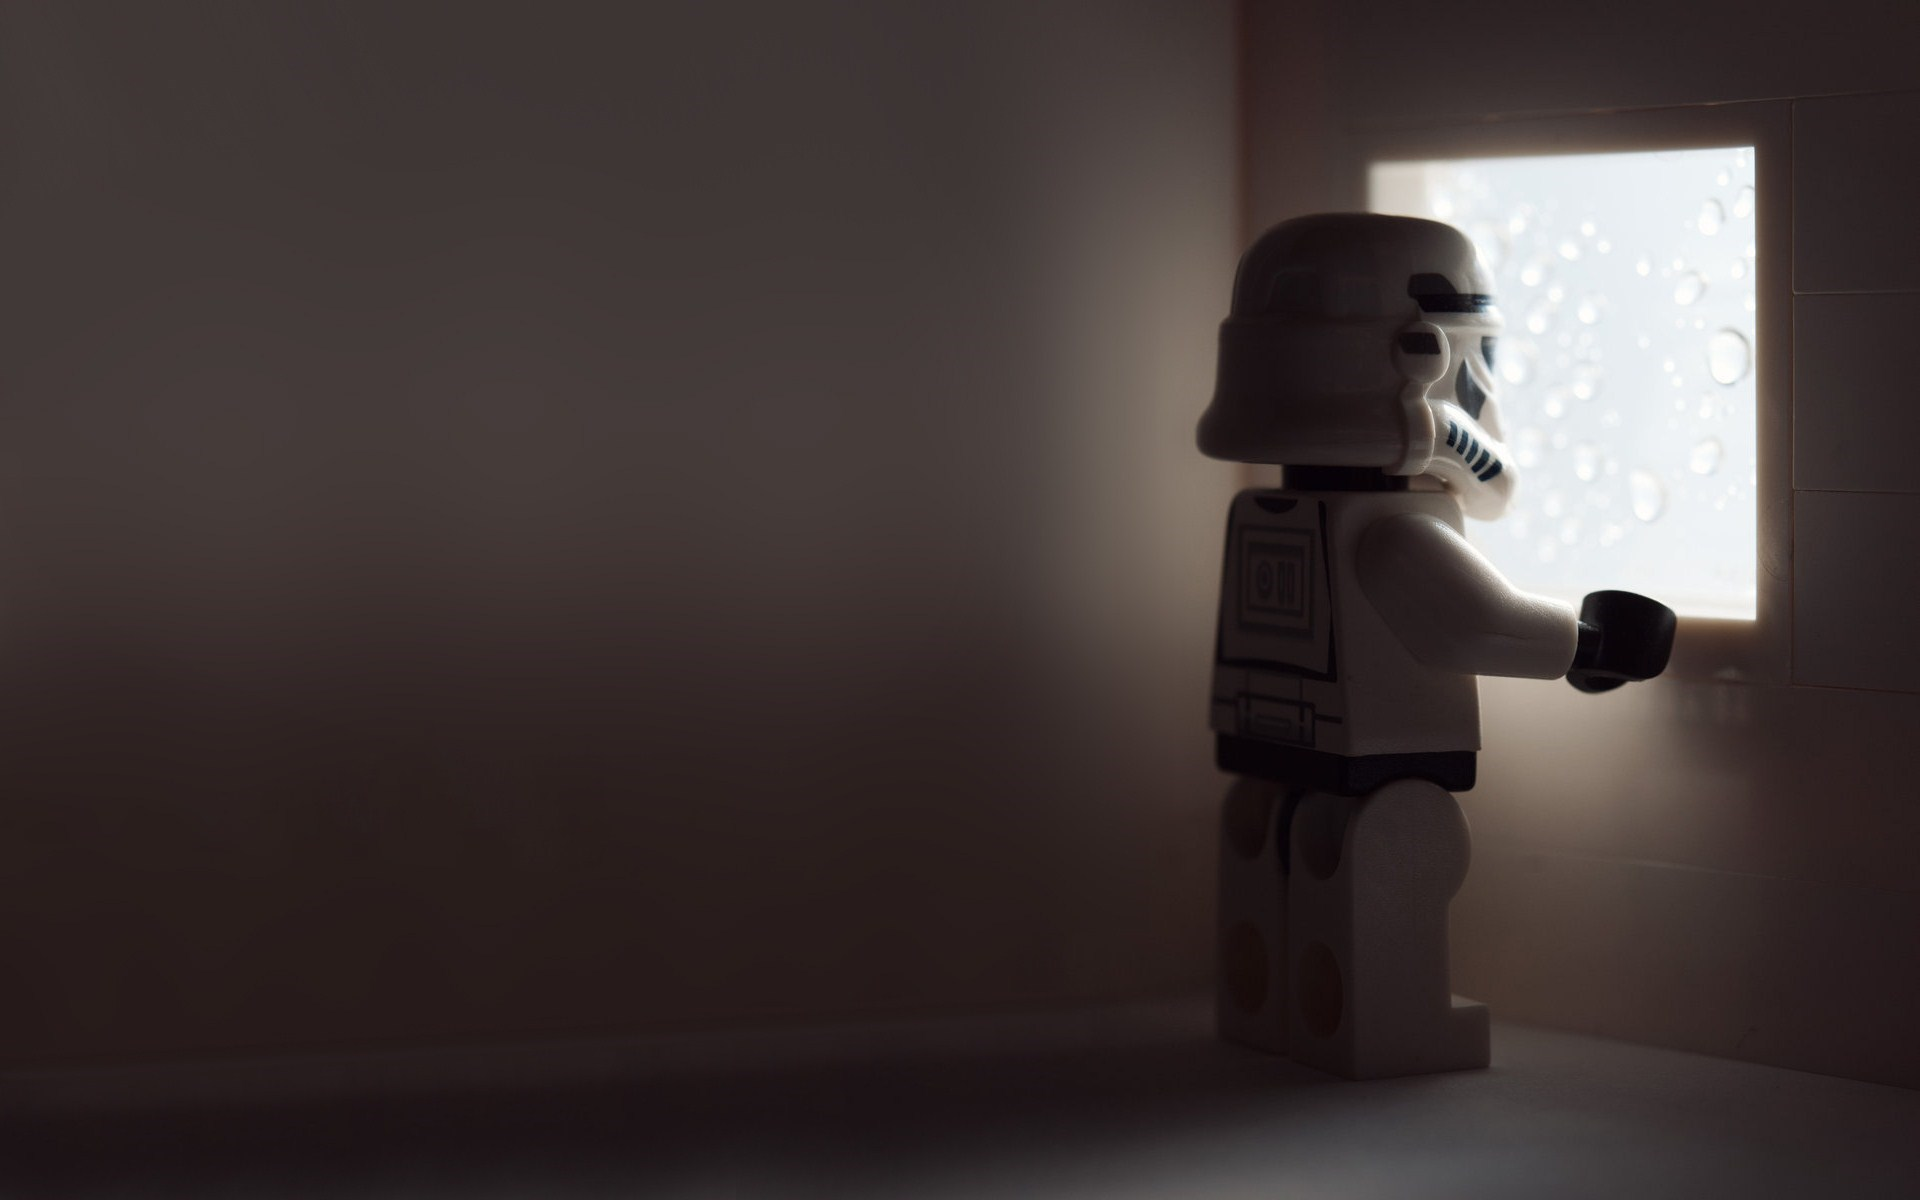 wallpaper lego cool pictures to pin on pinterest